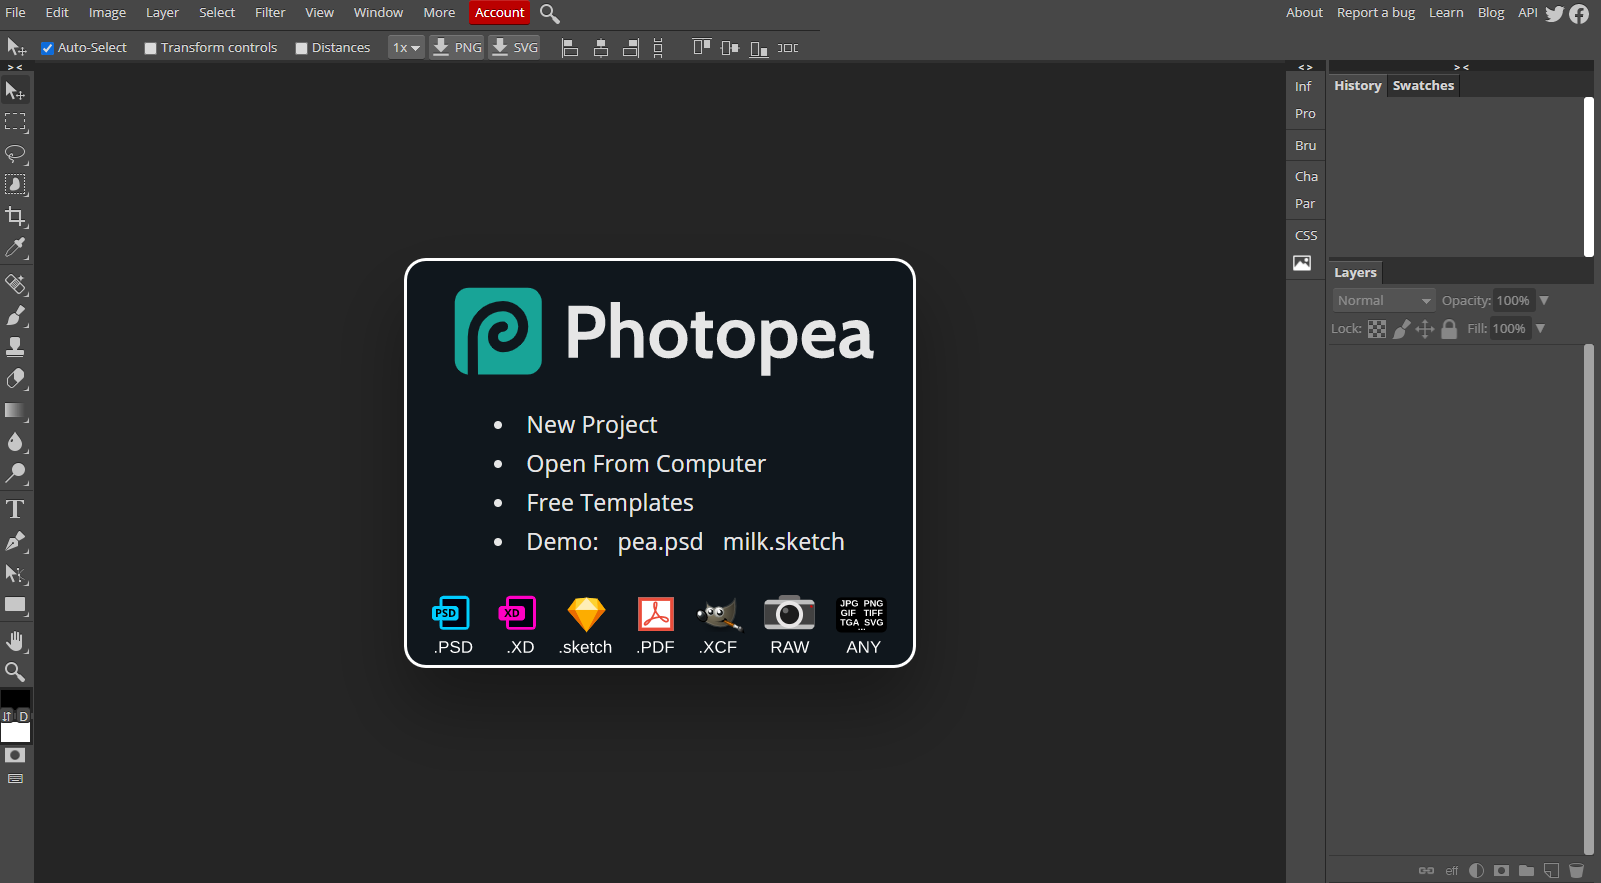 The Photopea web app